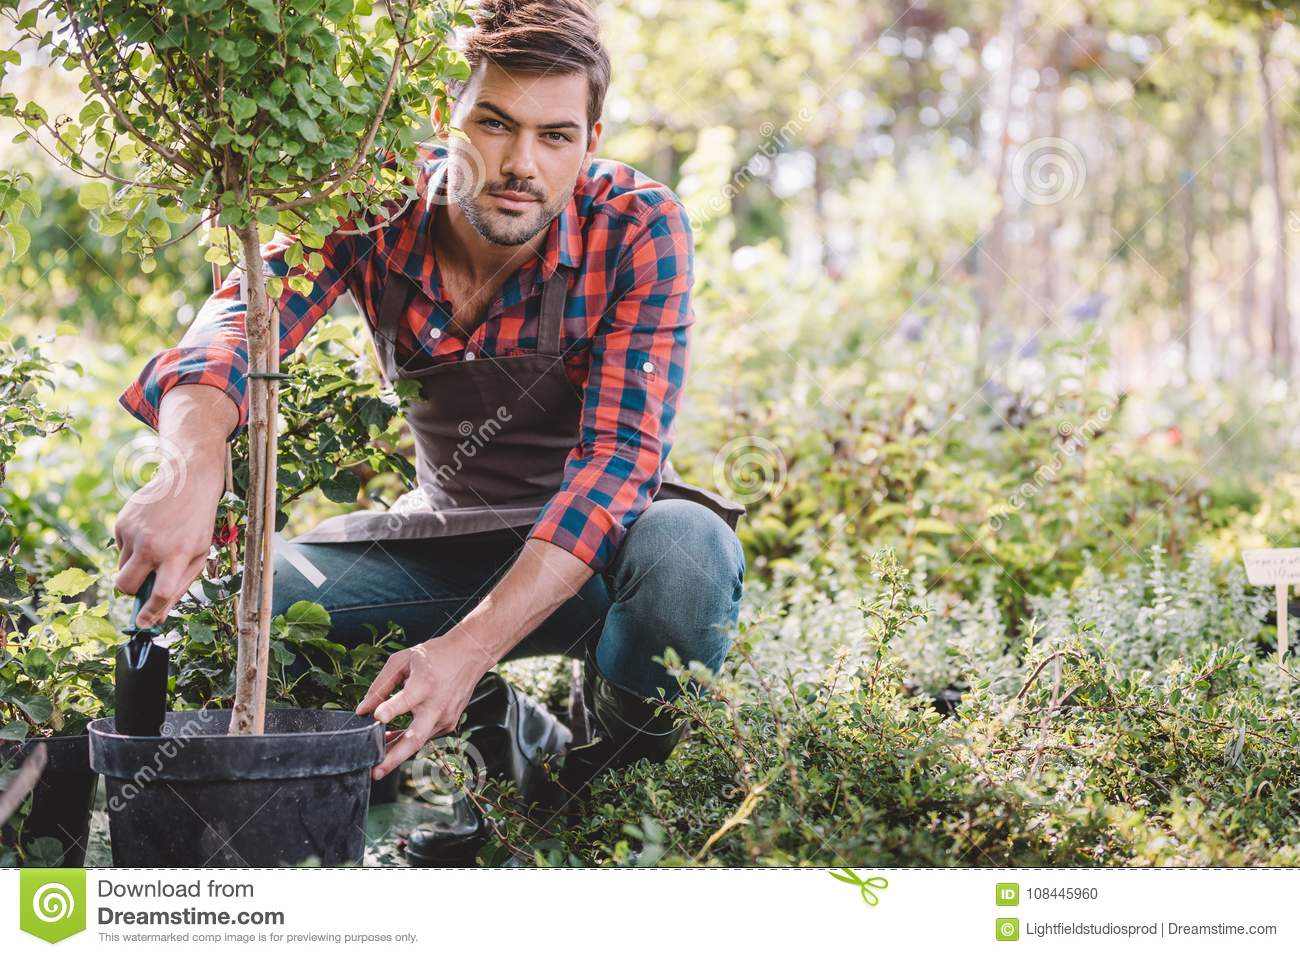 Gardener in apron planting tree while working in garden